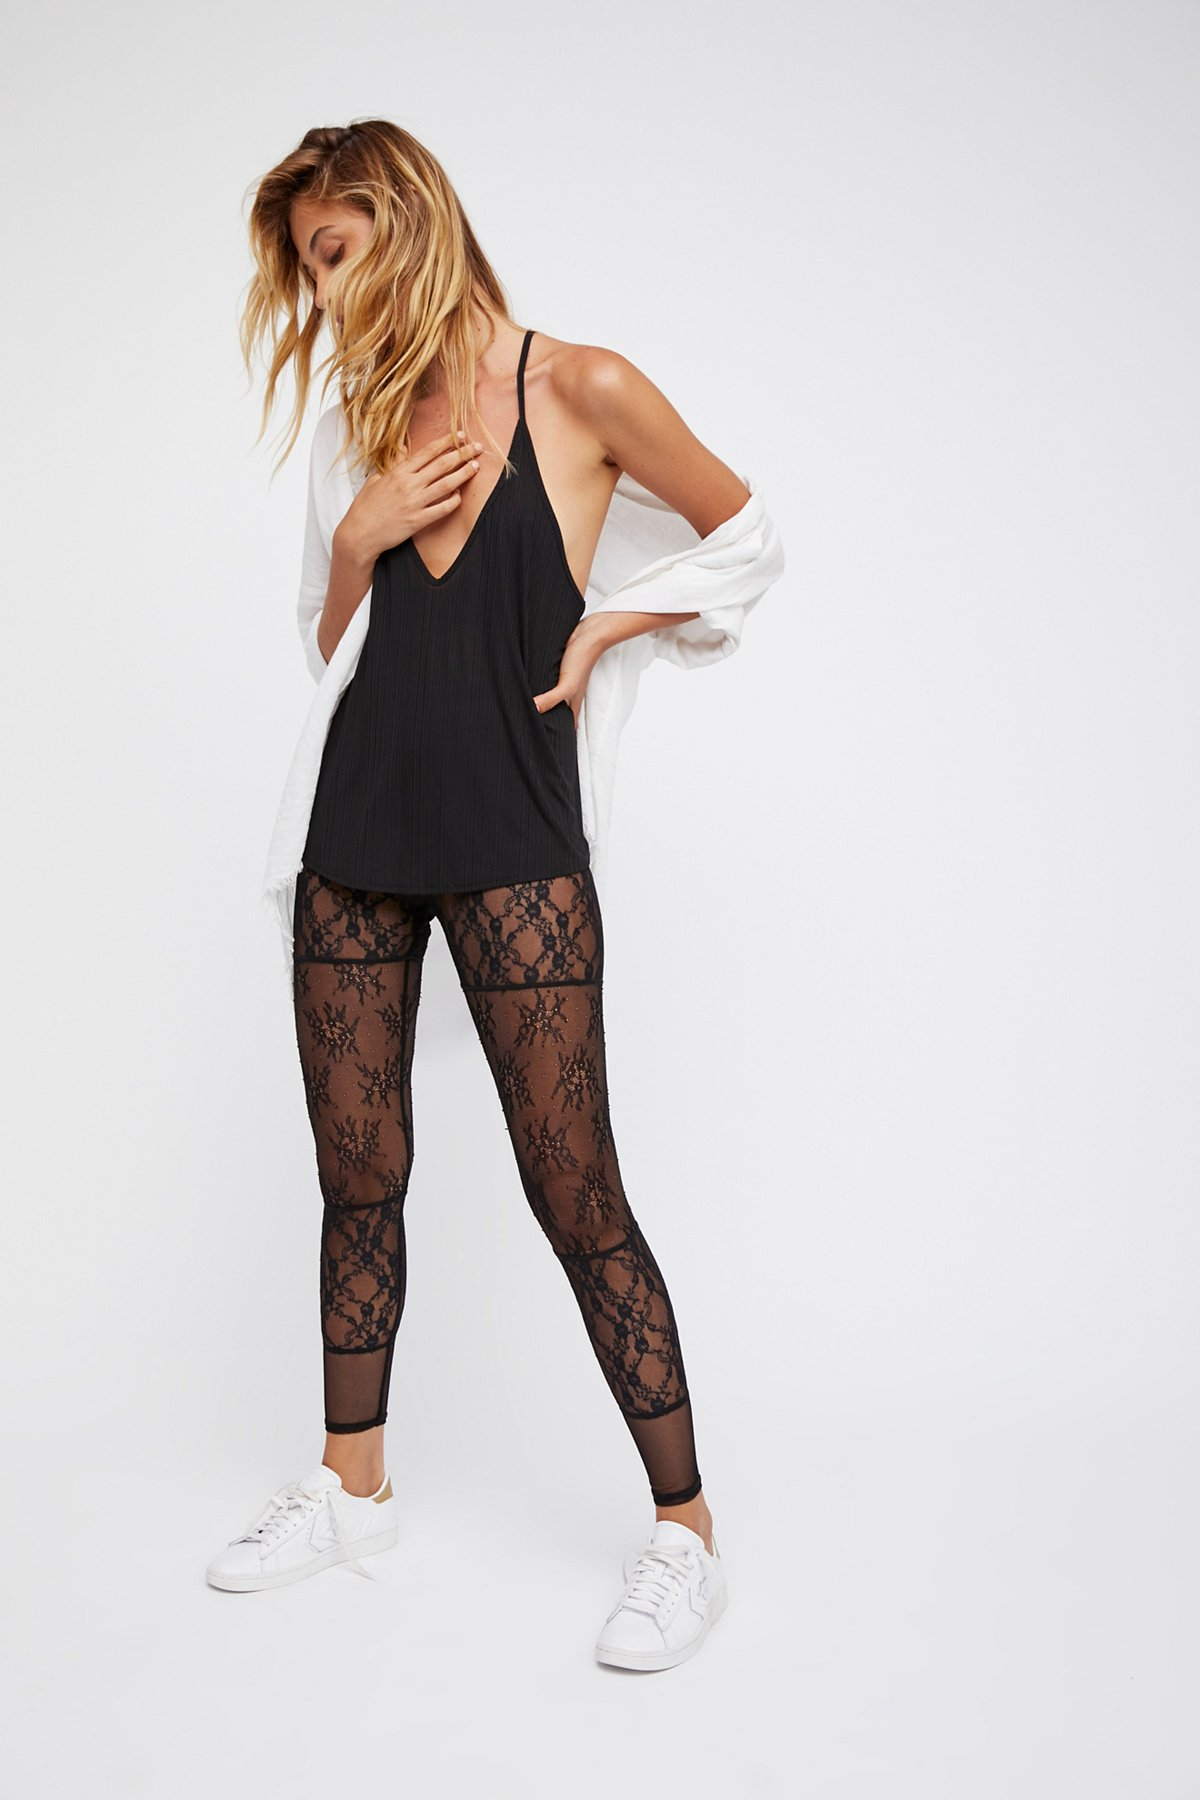 Sheer Bliss Lace Leggings